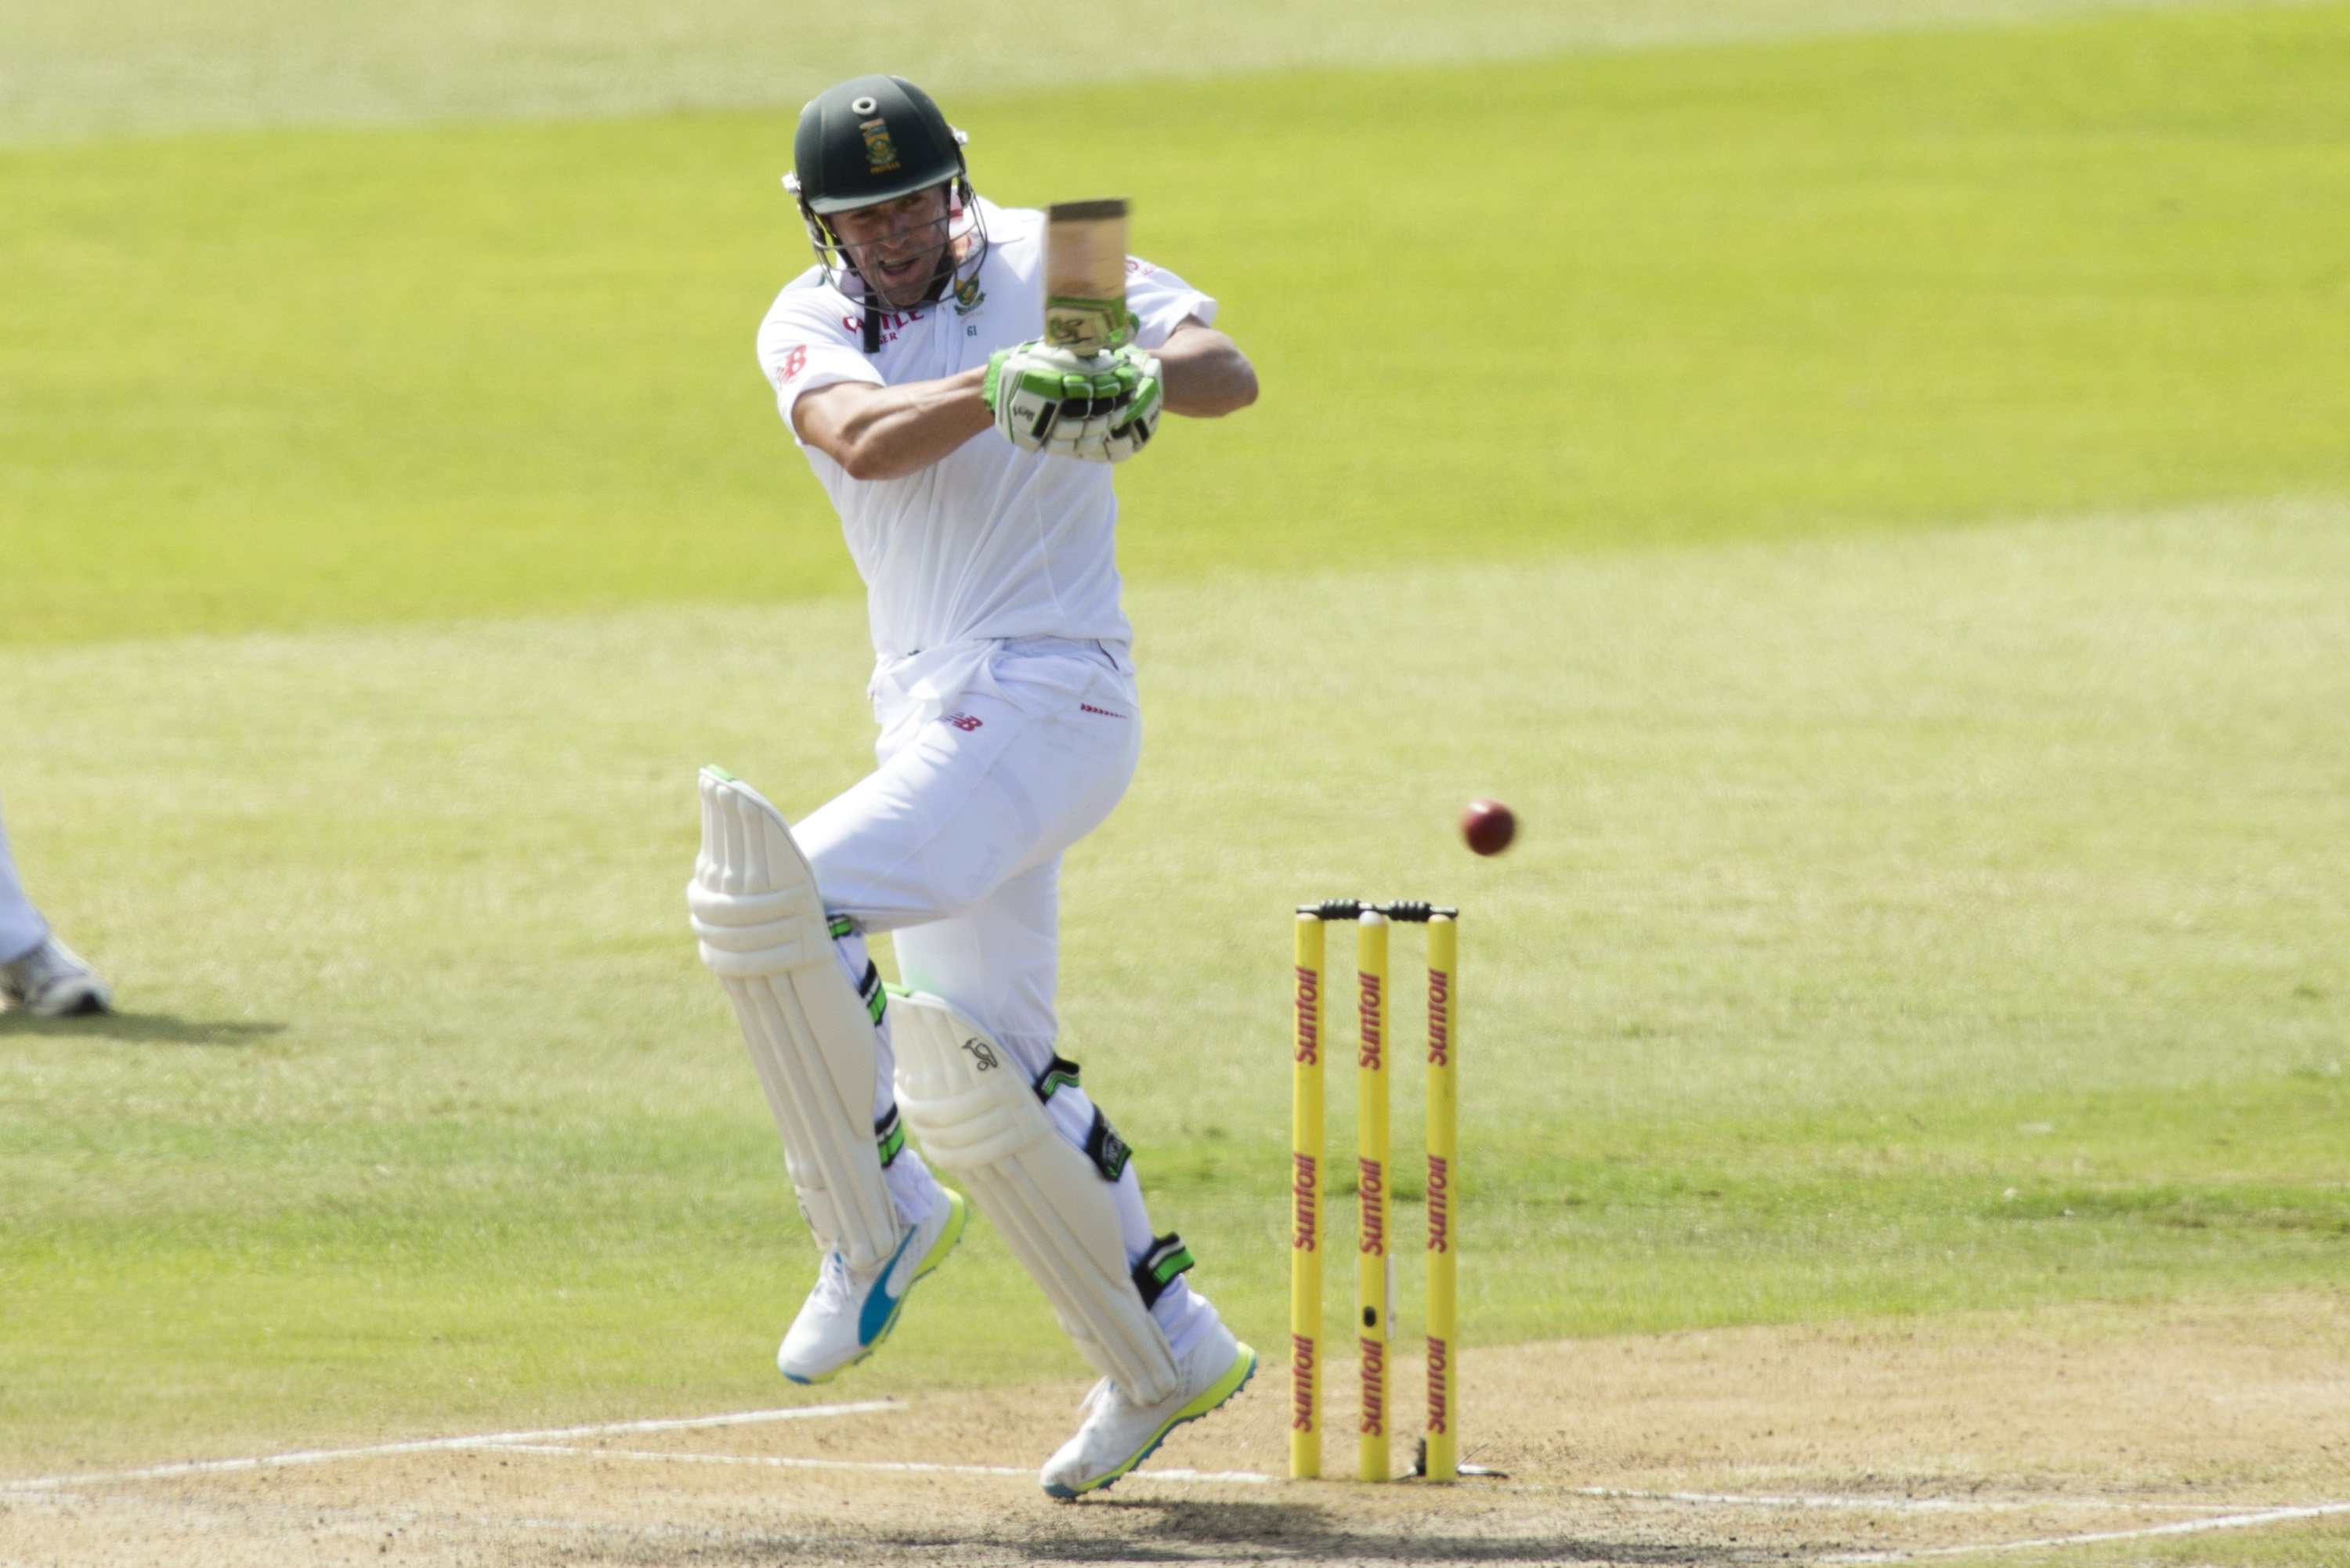 South Africa's AB de Villiers plays a shot during their first cricket test match against England in Durban, South Africa, December 27, 2015. Photo: Reuters